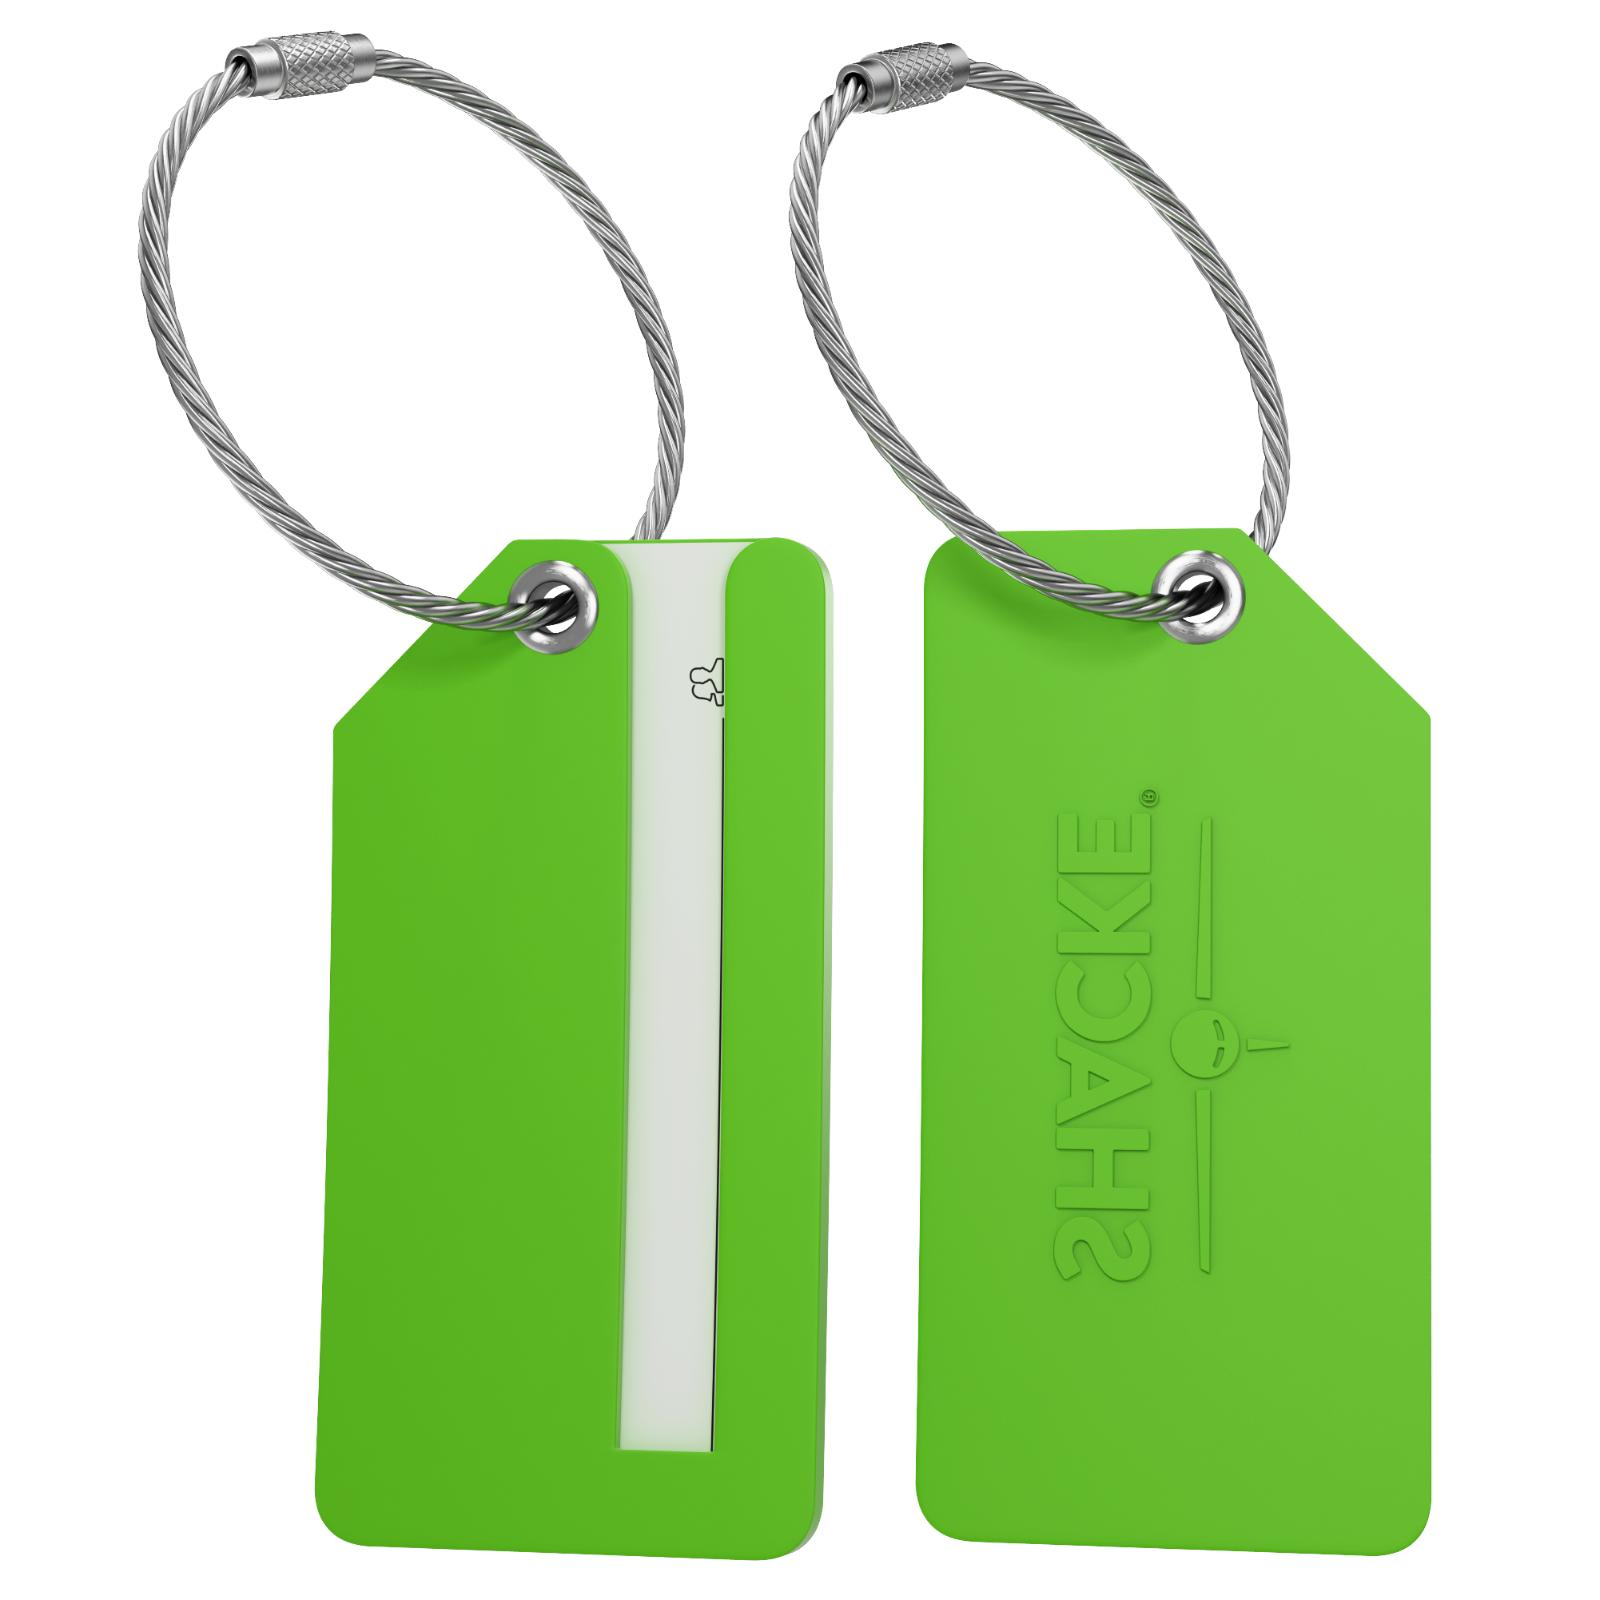 Shacke Tags - Fully Rubber Cover